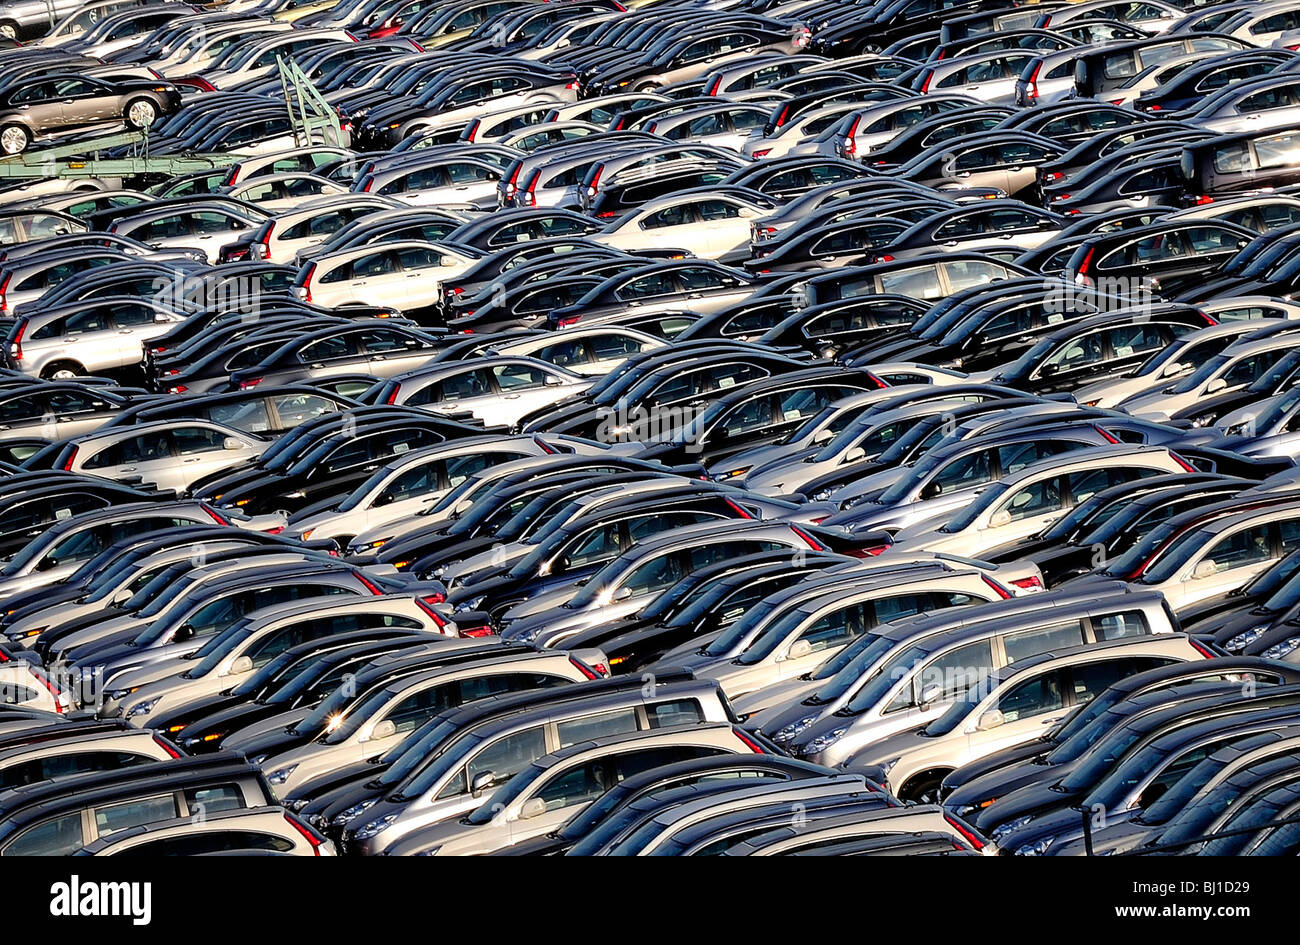 Vehicles await loading onto ships for export at a port in Yokohama, Japan. - Stock Image